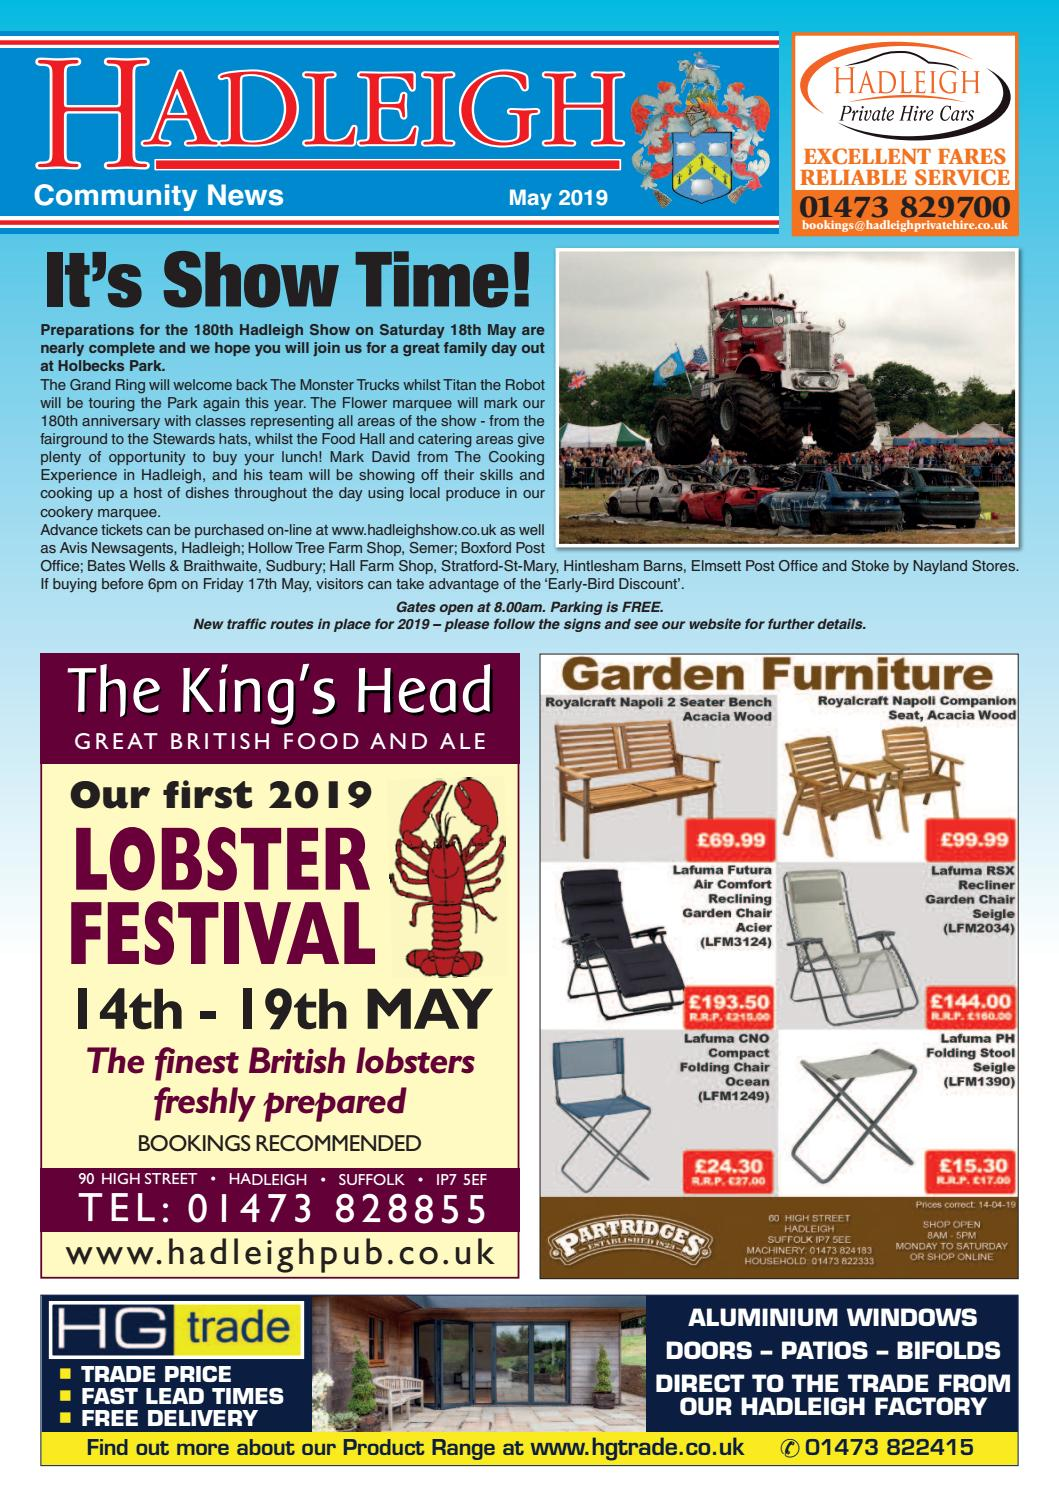 Hadleigh Community News, May 2019 by Keith Avis Printers - issuu